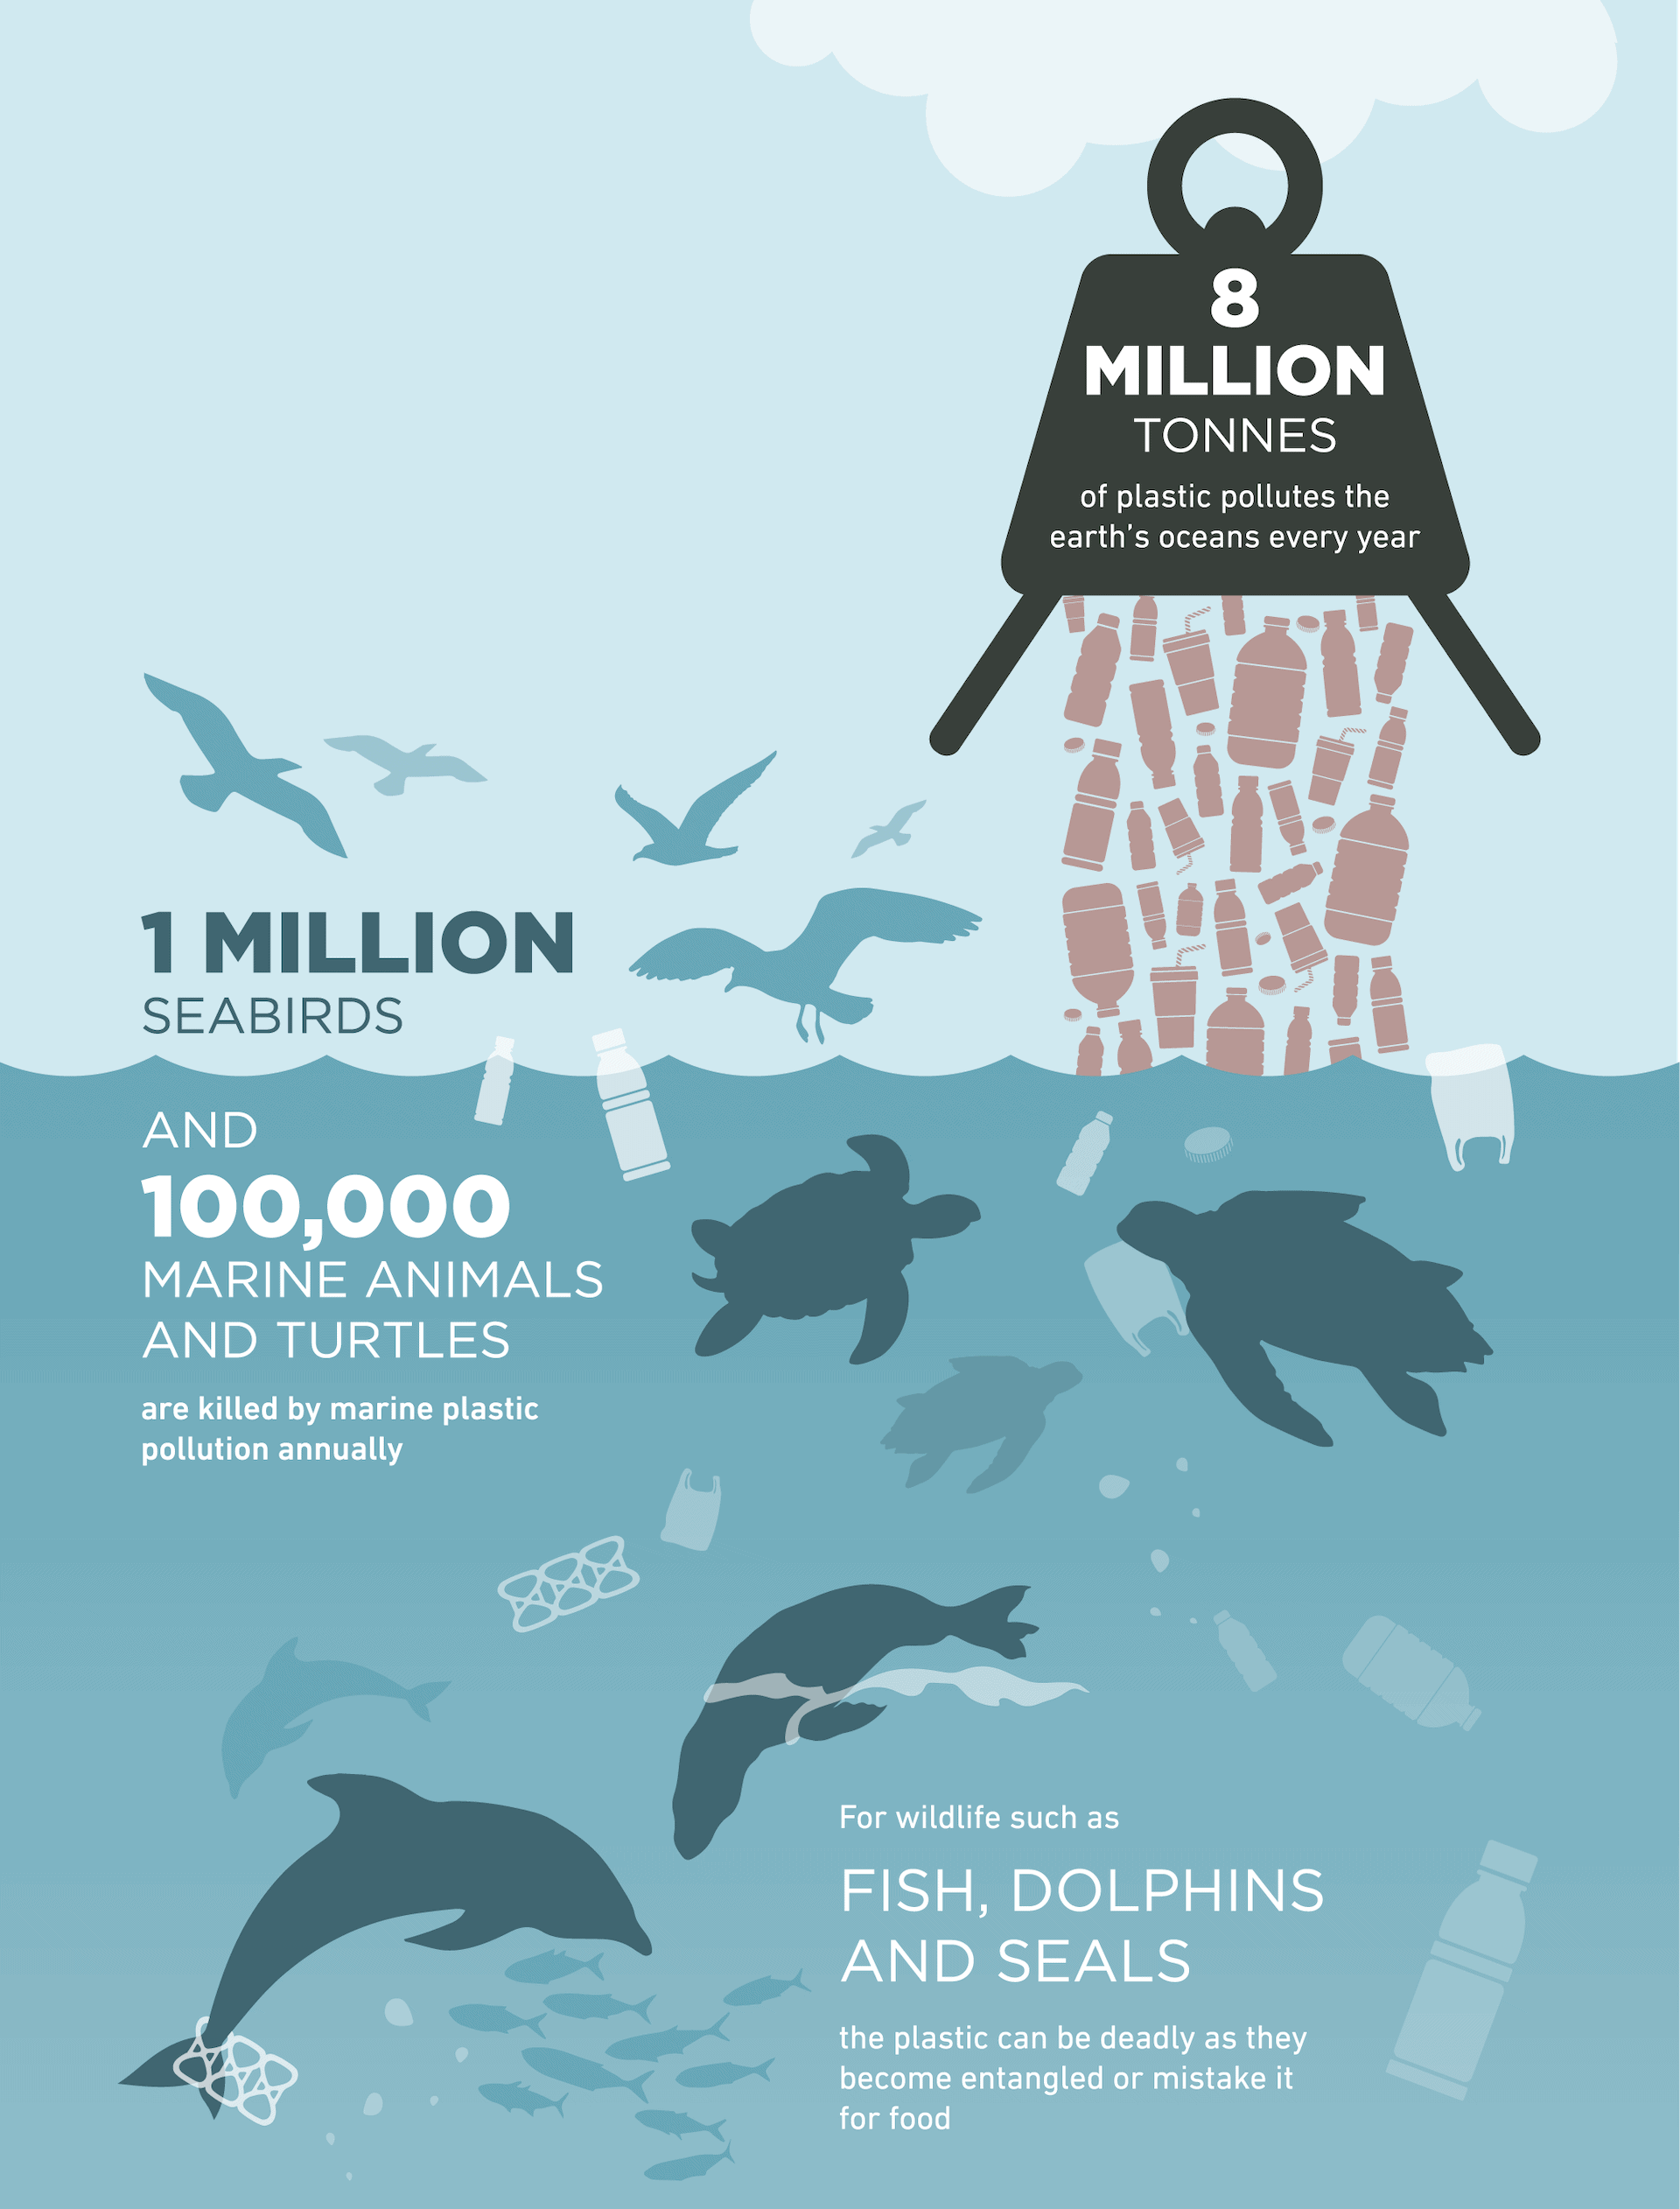 8 million tons of plastic dumped into the oceans each year, killing millions of seabirds and sea life.